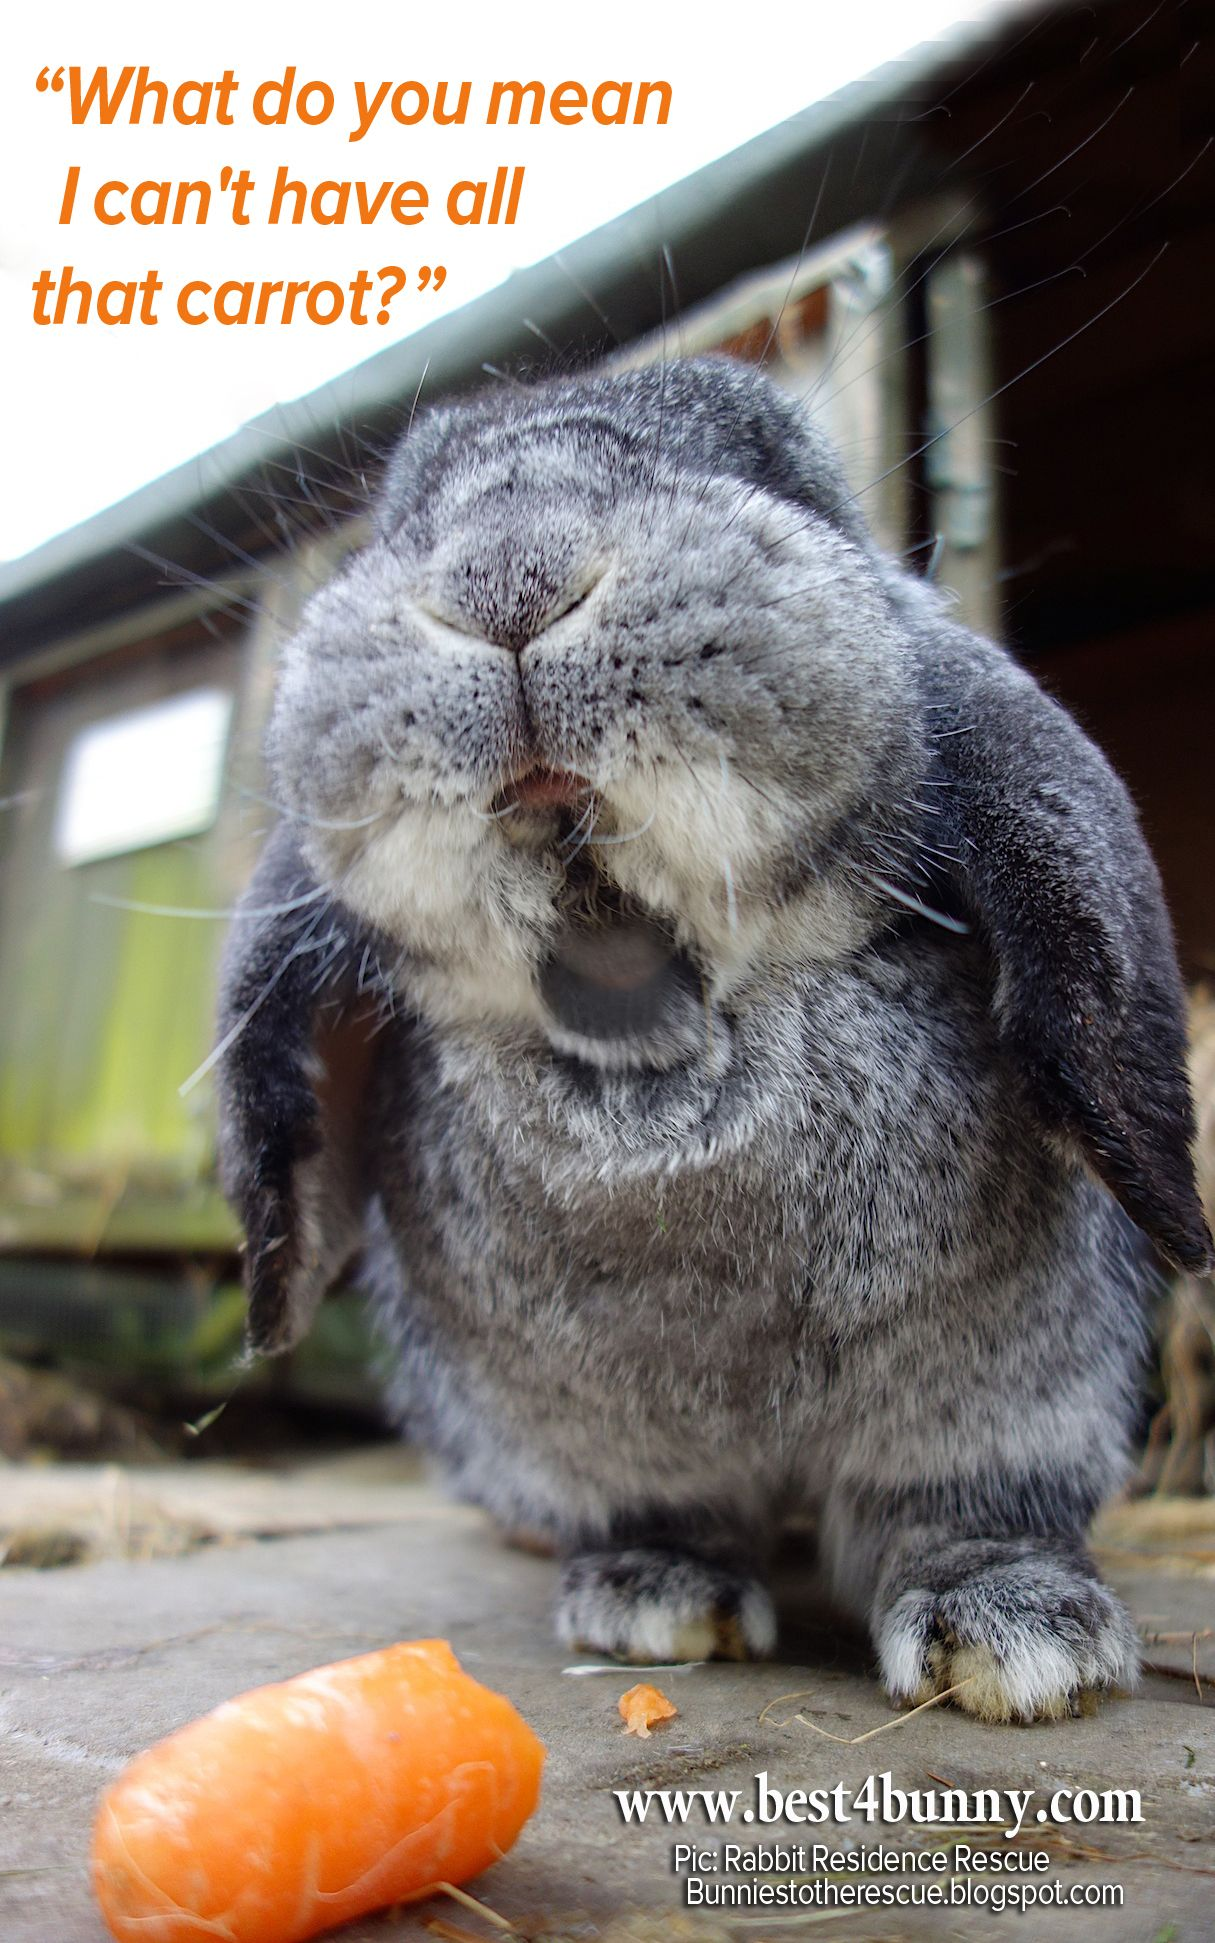 Feed Carrots To Rabbits As A Treat Only As They Can Cause Lots Of Health Problems Pet Bunny Rabbit Rabbit Care